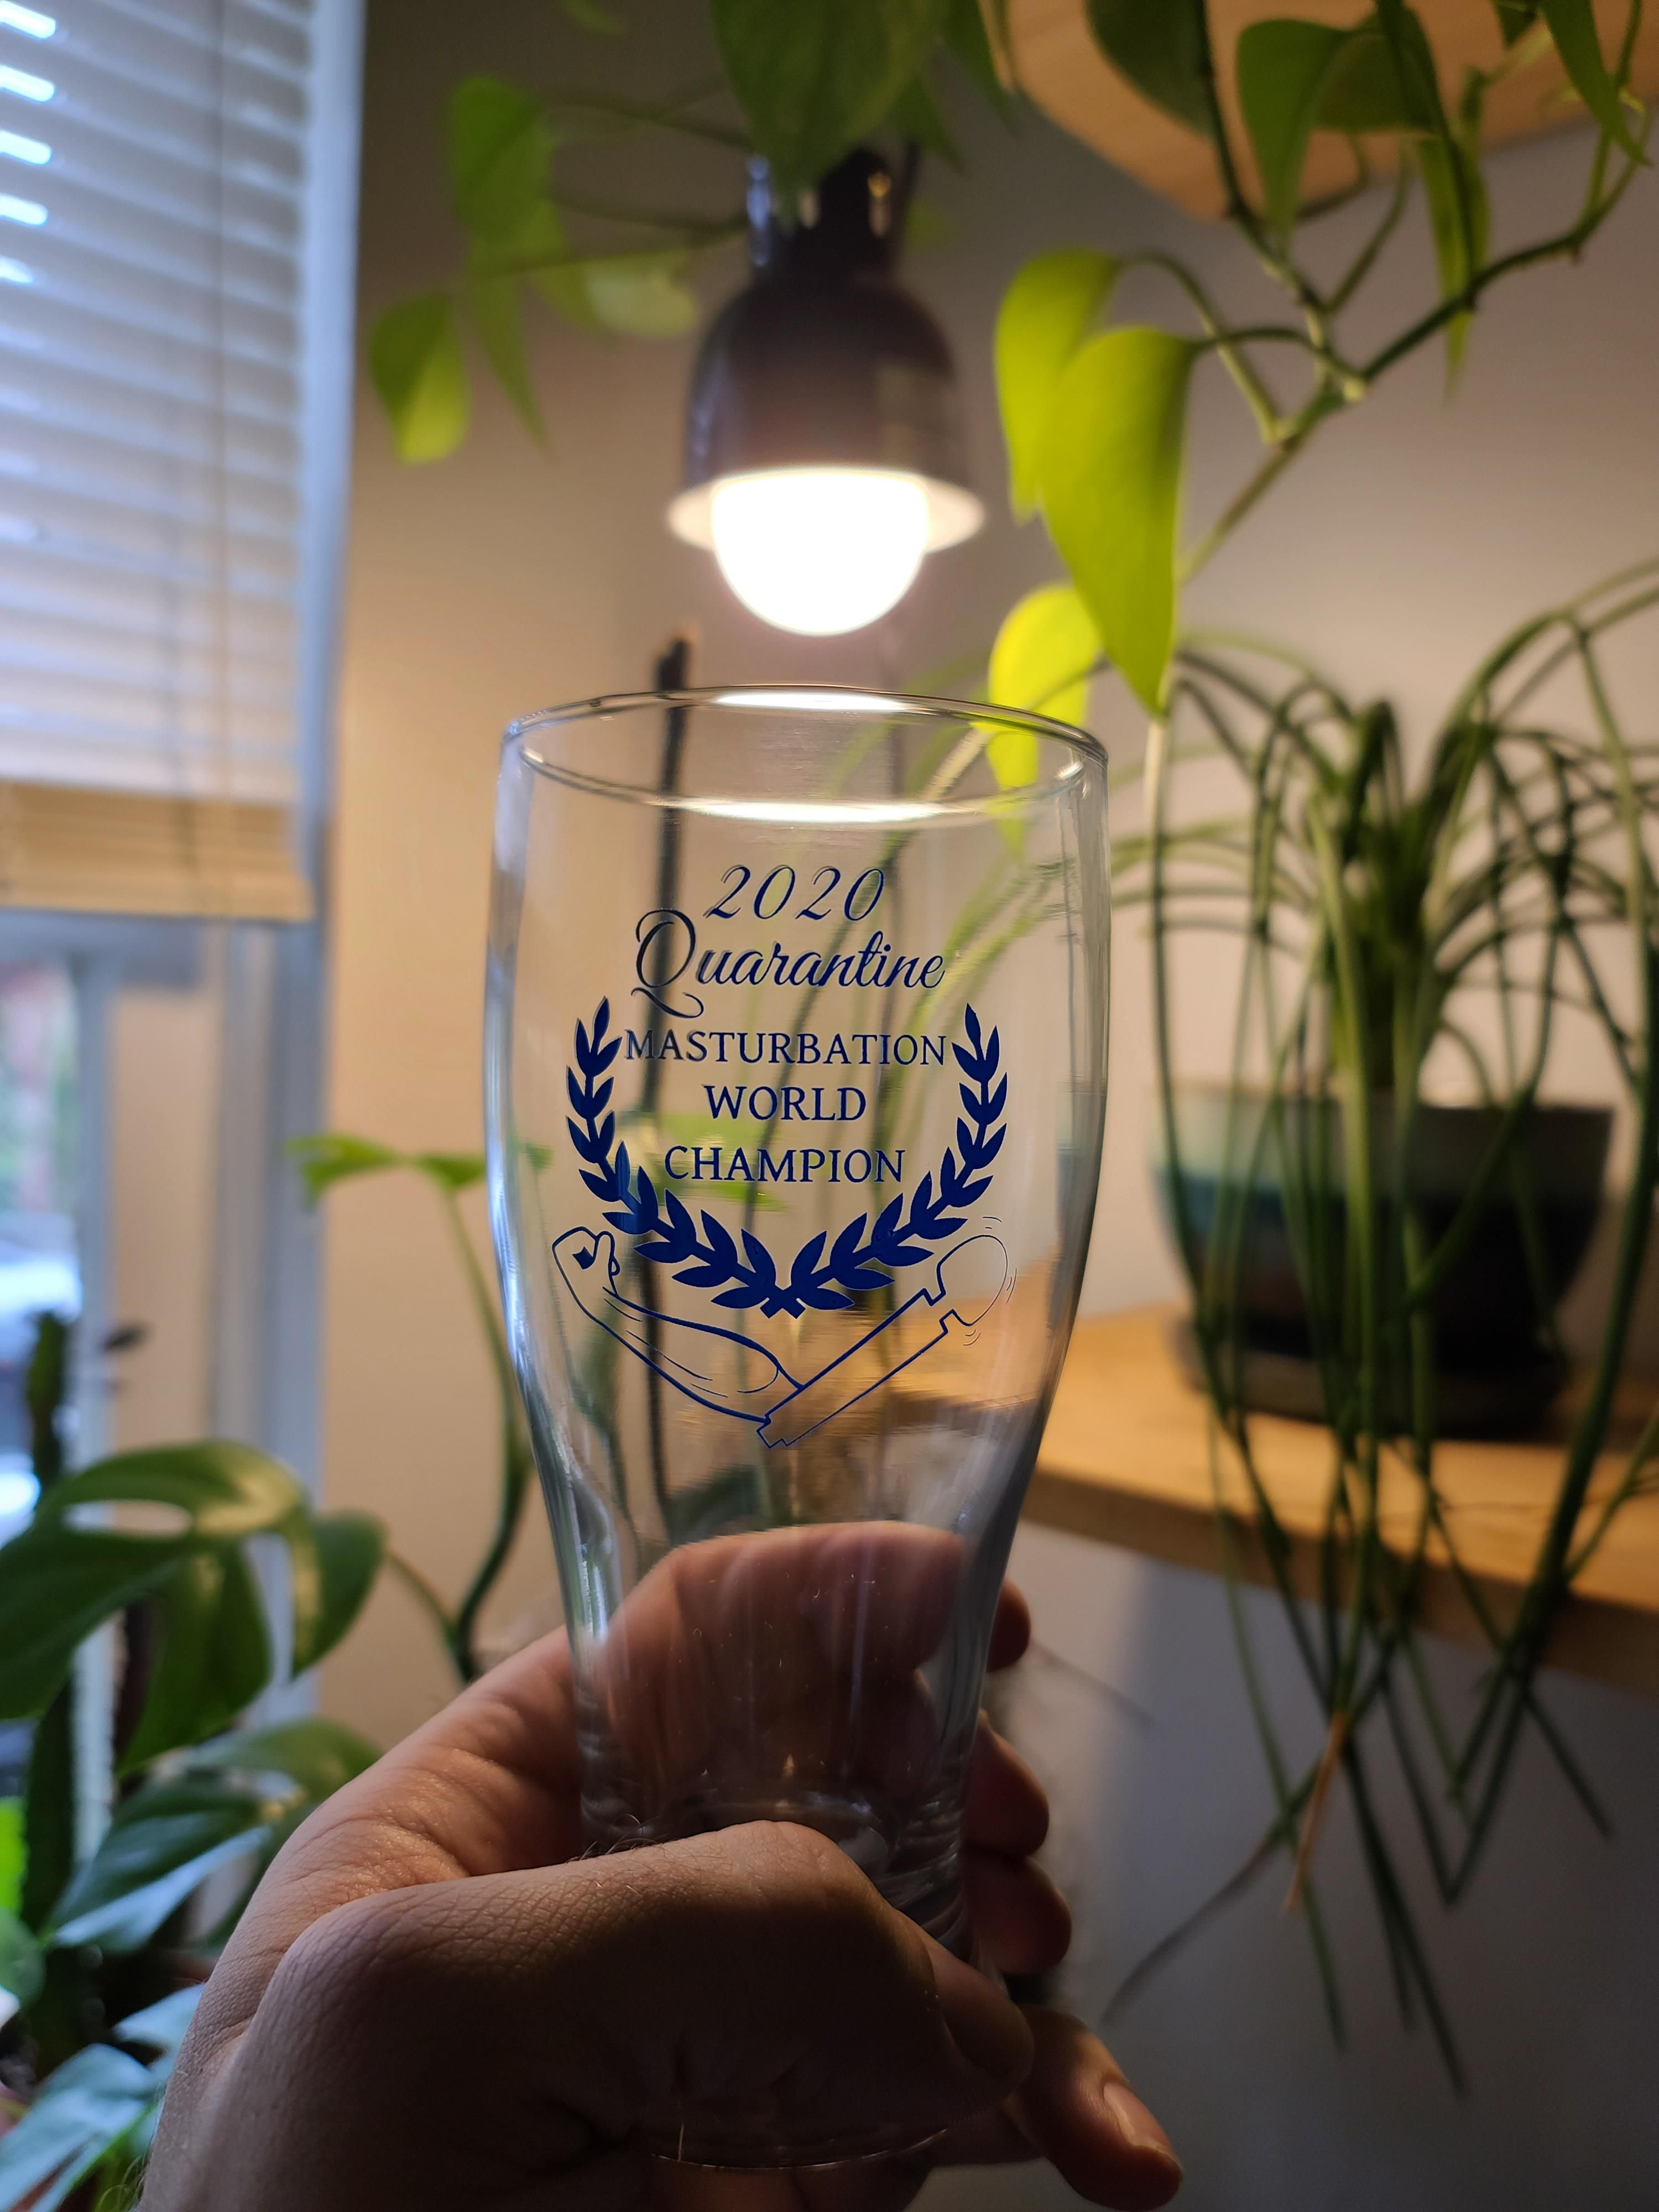 My new quarantine beer glass has arrived. Anyone want to compete for the title?